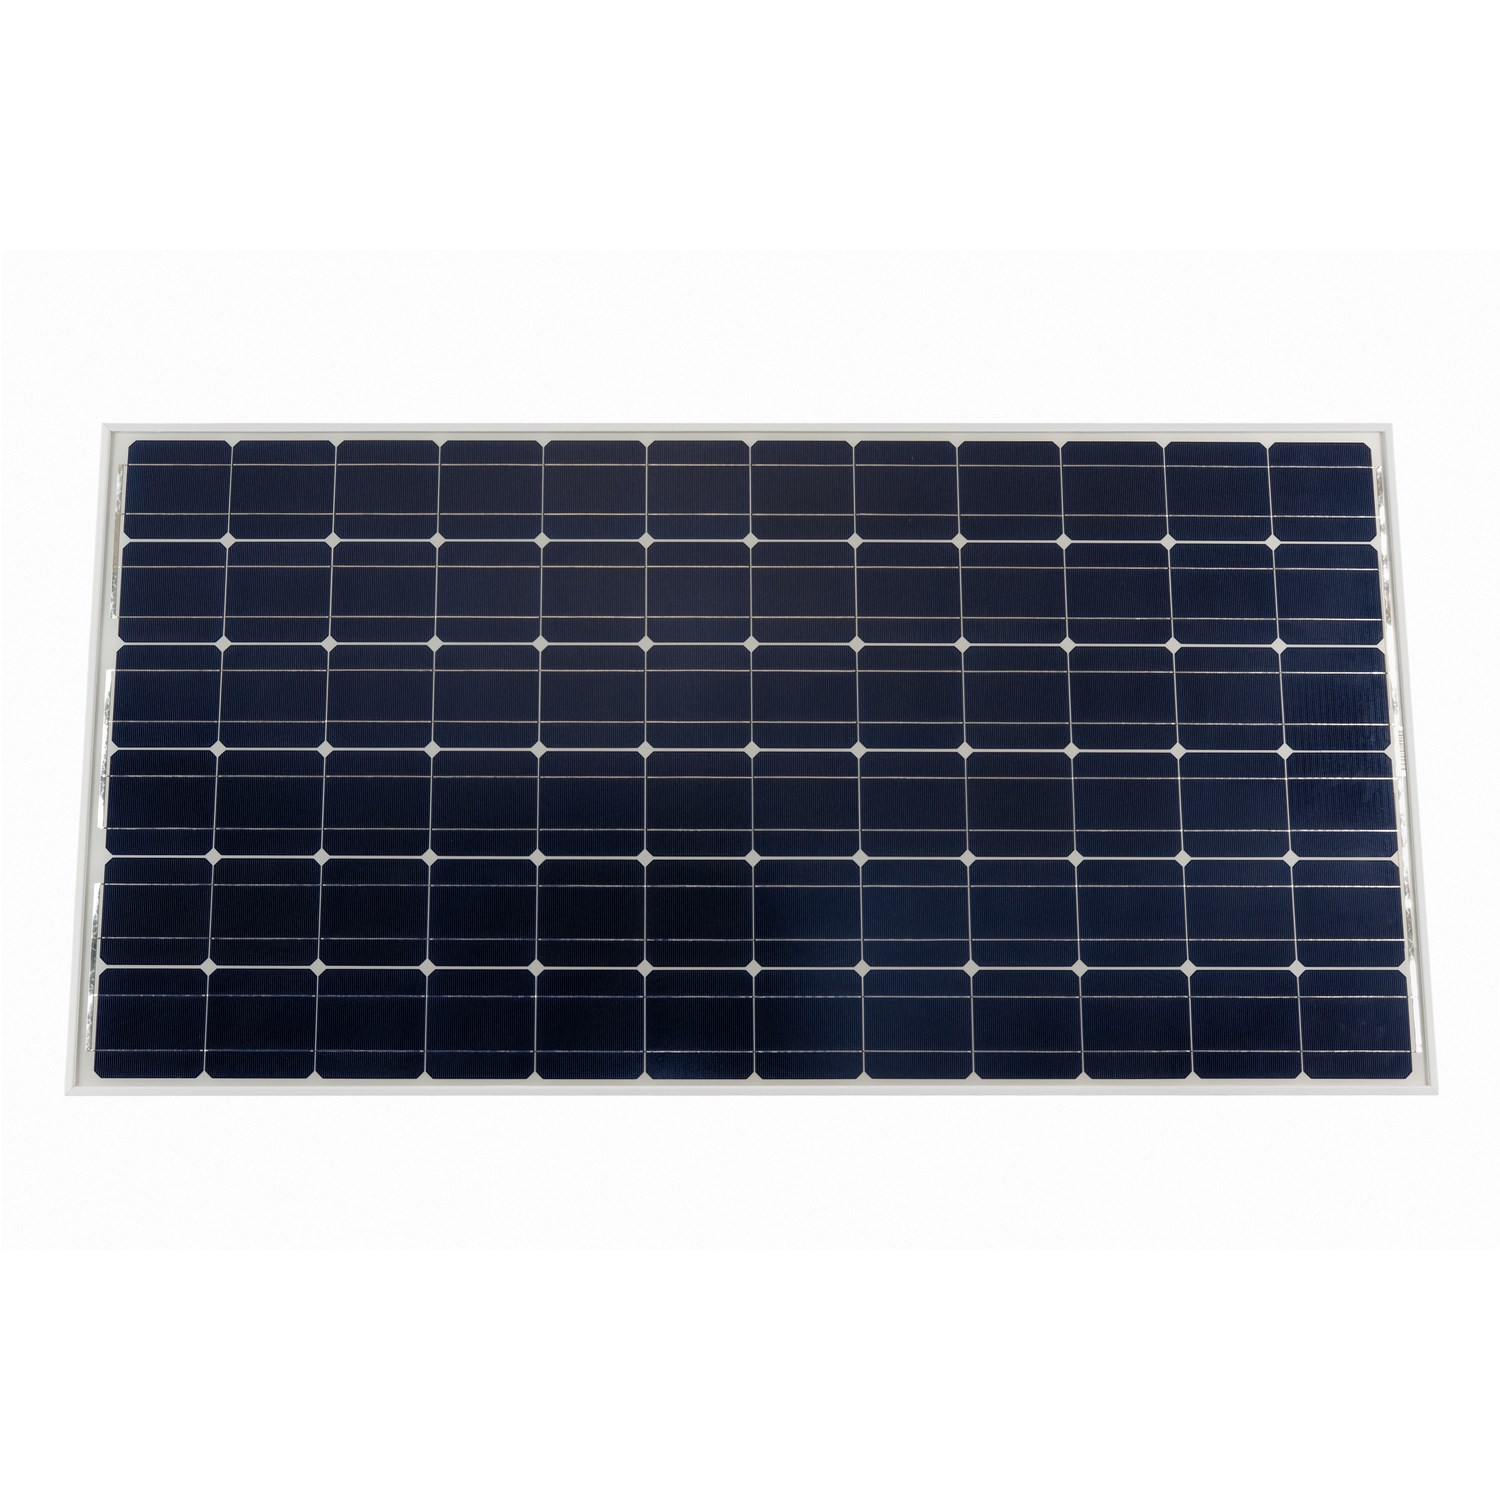 Victron Solar Panel 115W-12V Mono 1015x668x30mm series 4a